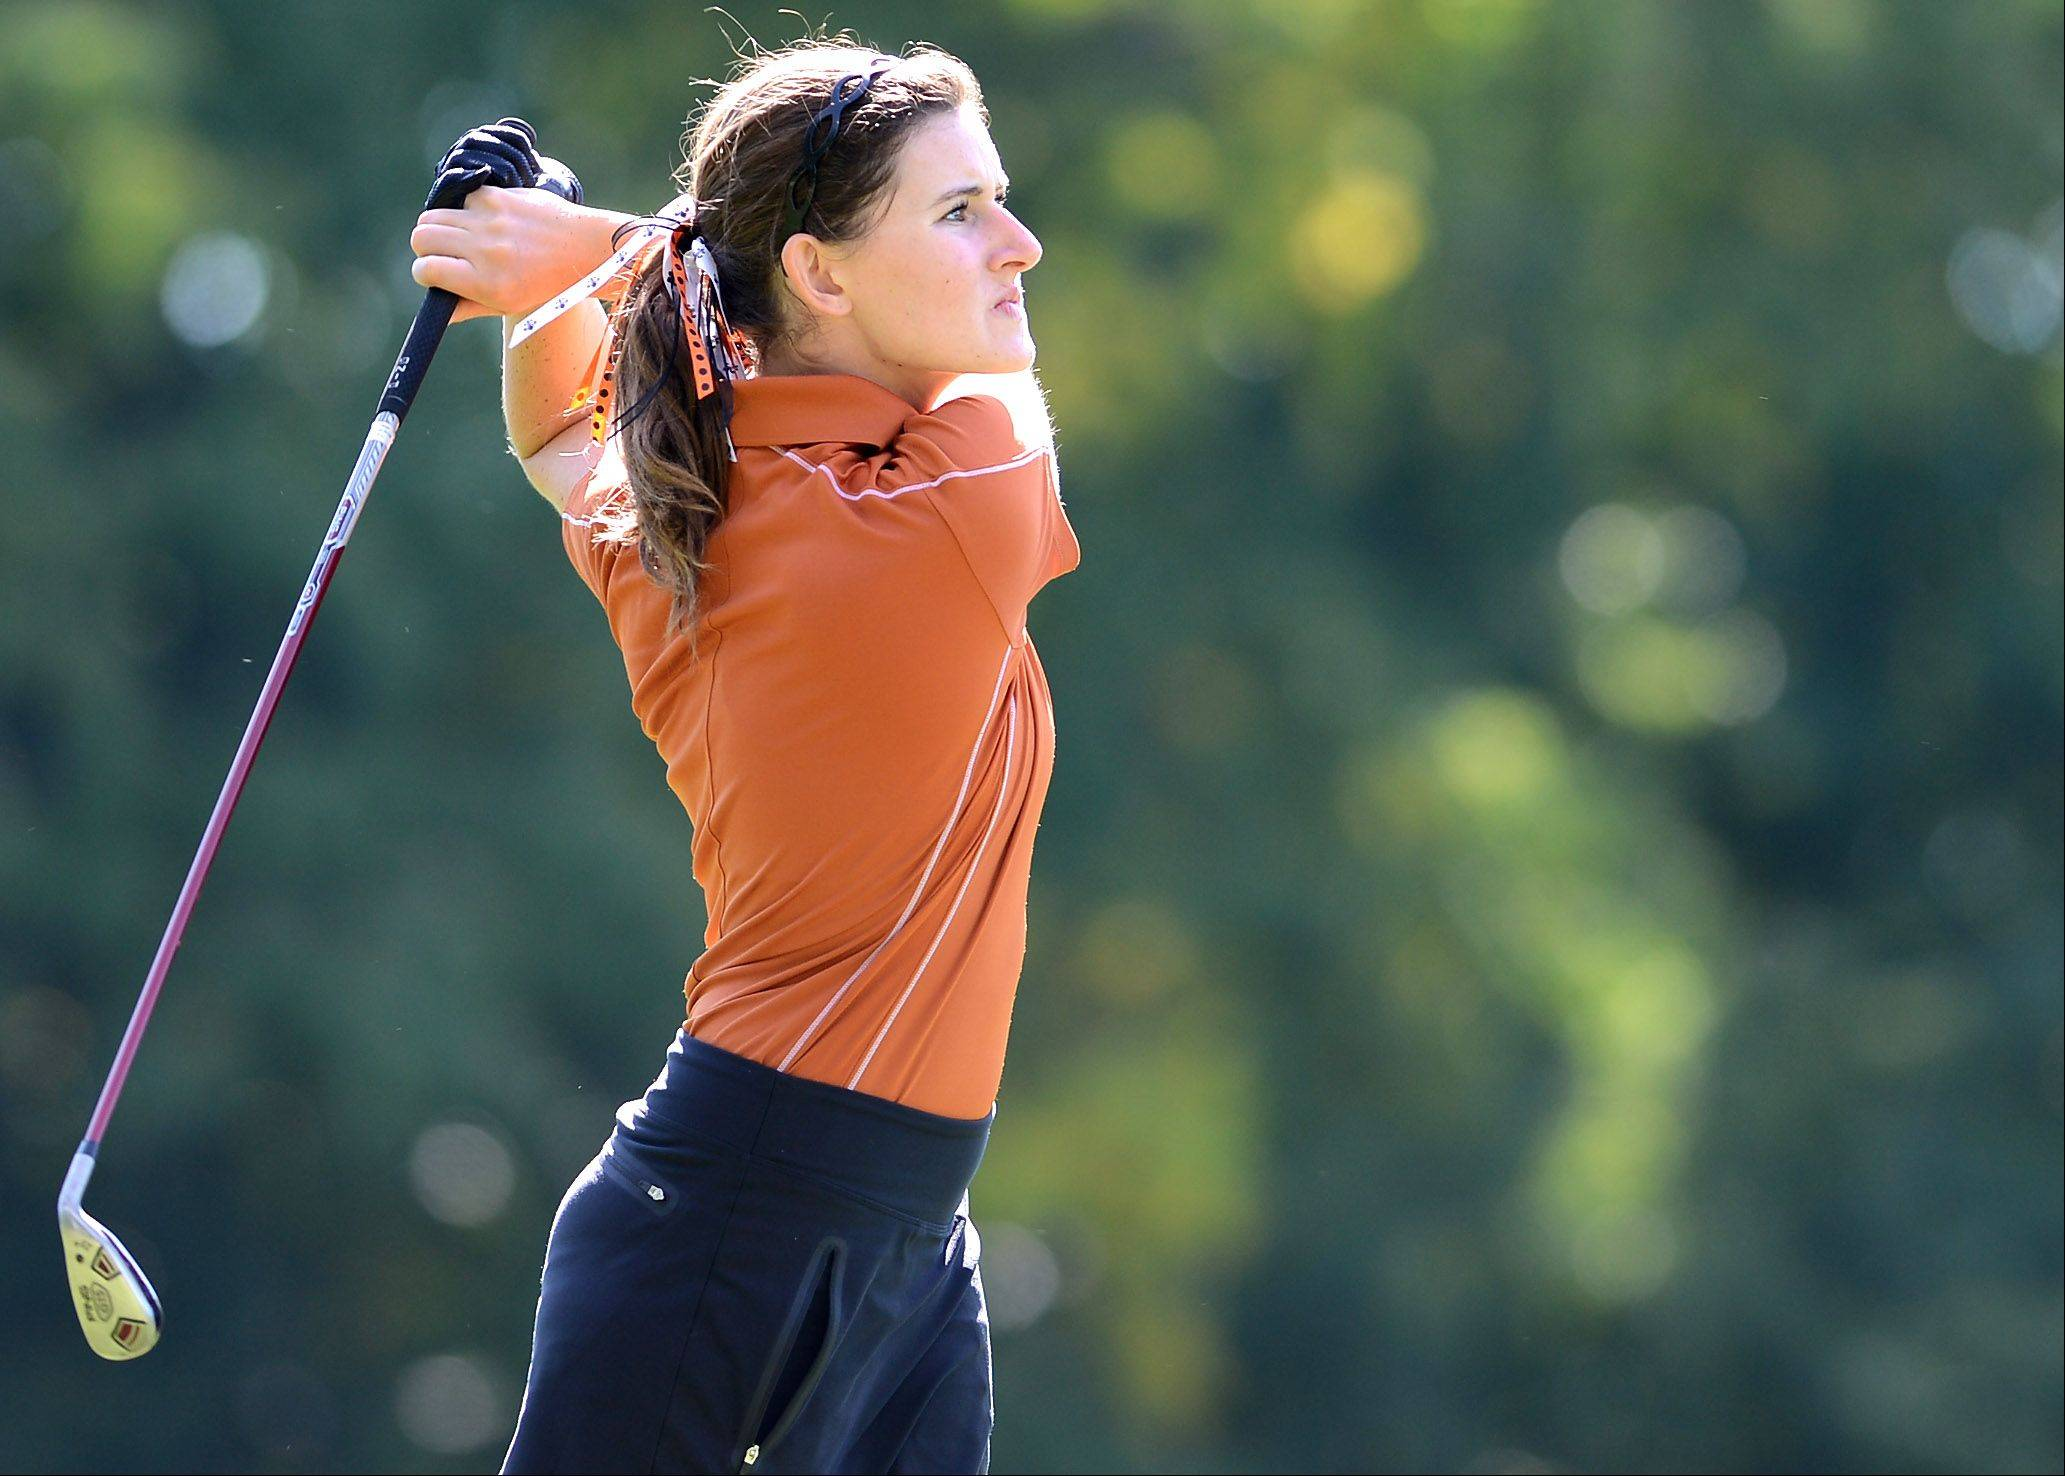 St. Charles East's Darby Crane tees off during Monday's Upstate Eight meet in West Chicago.